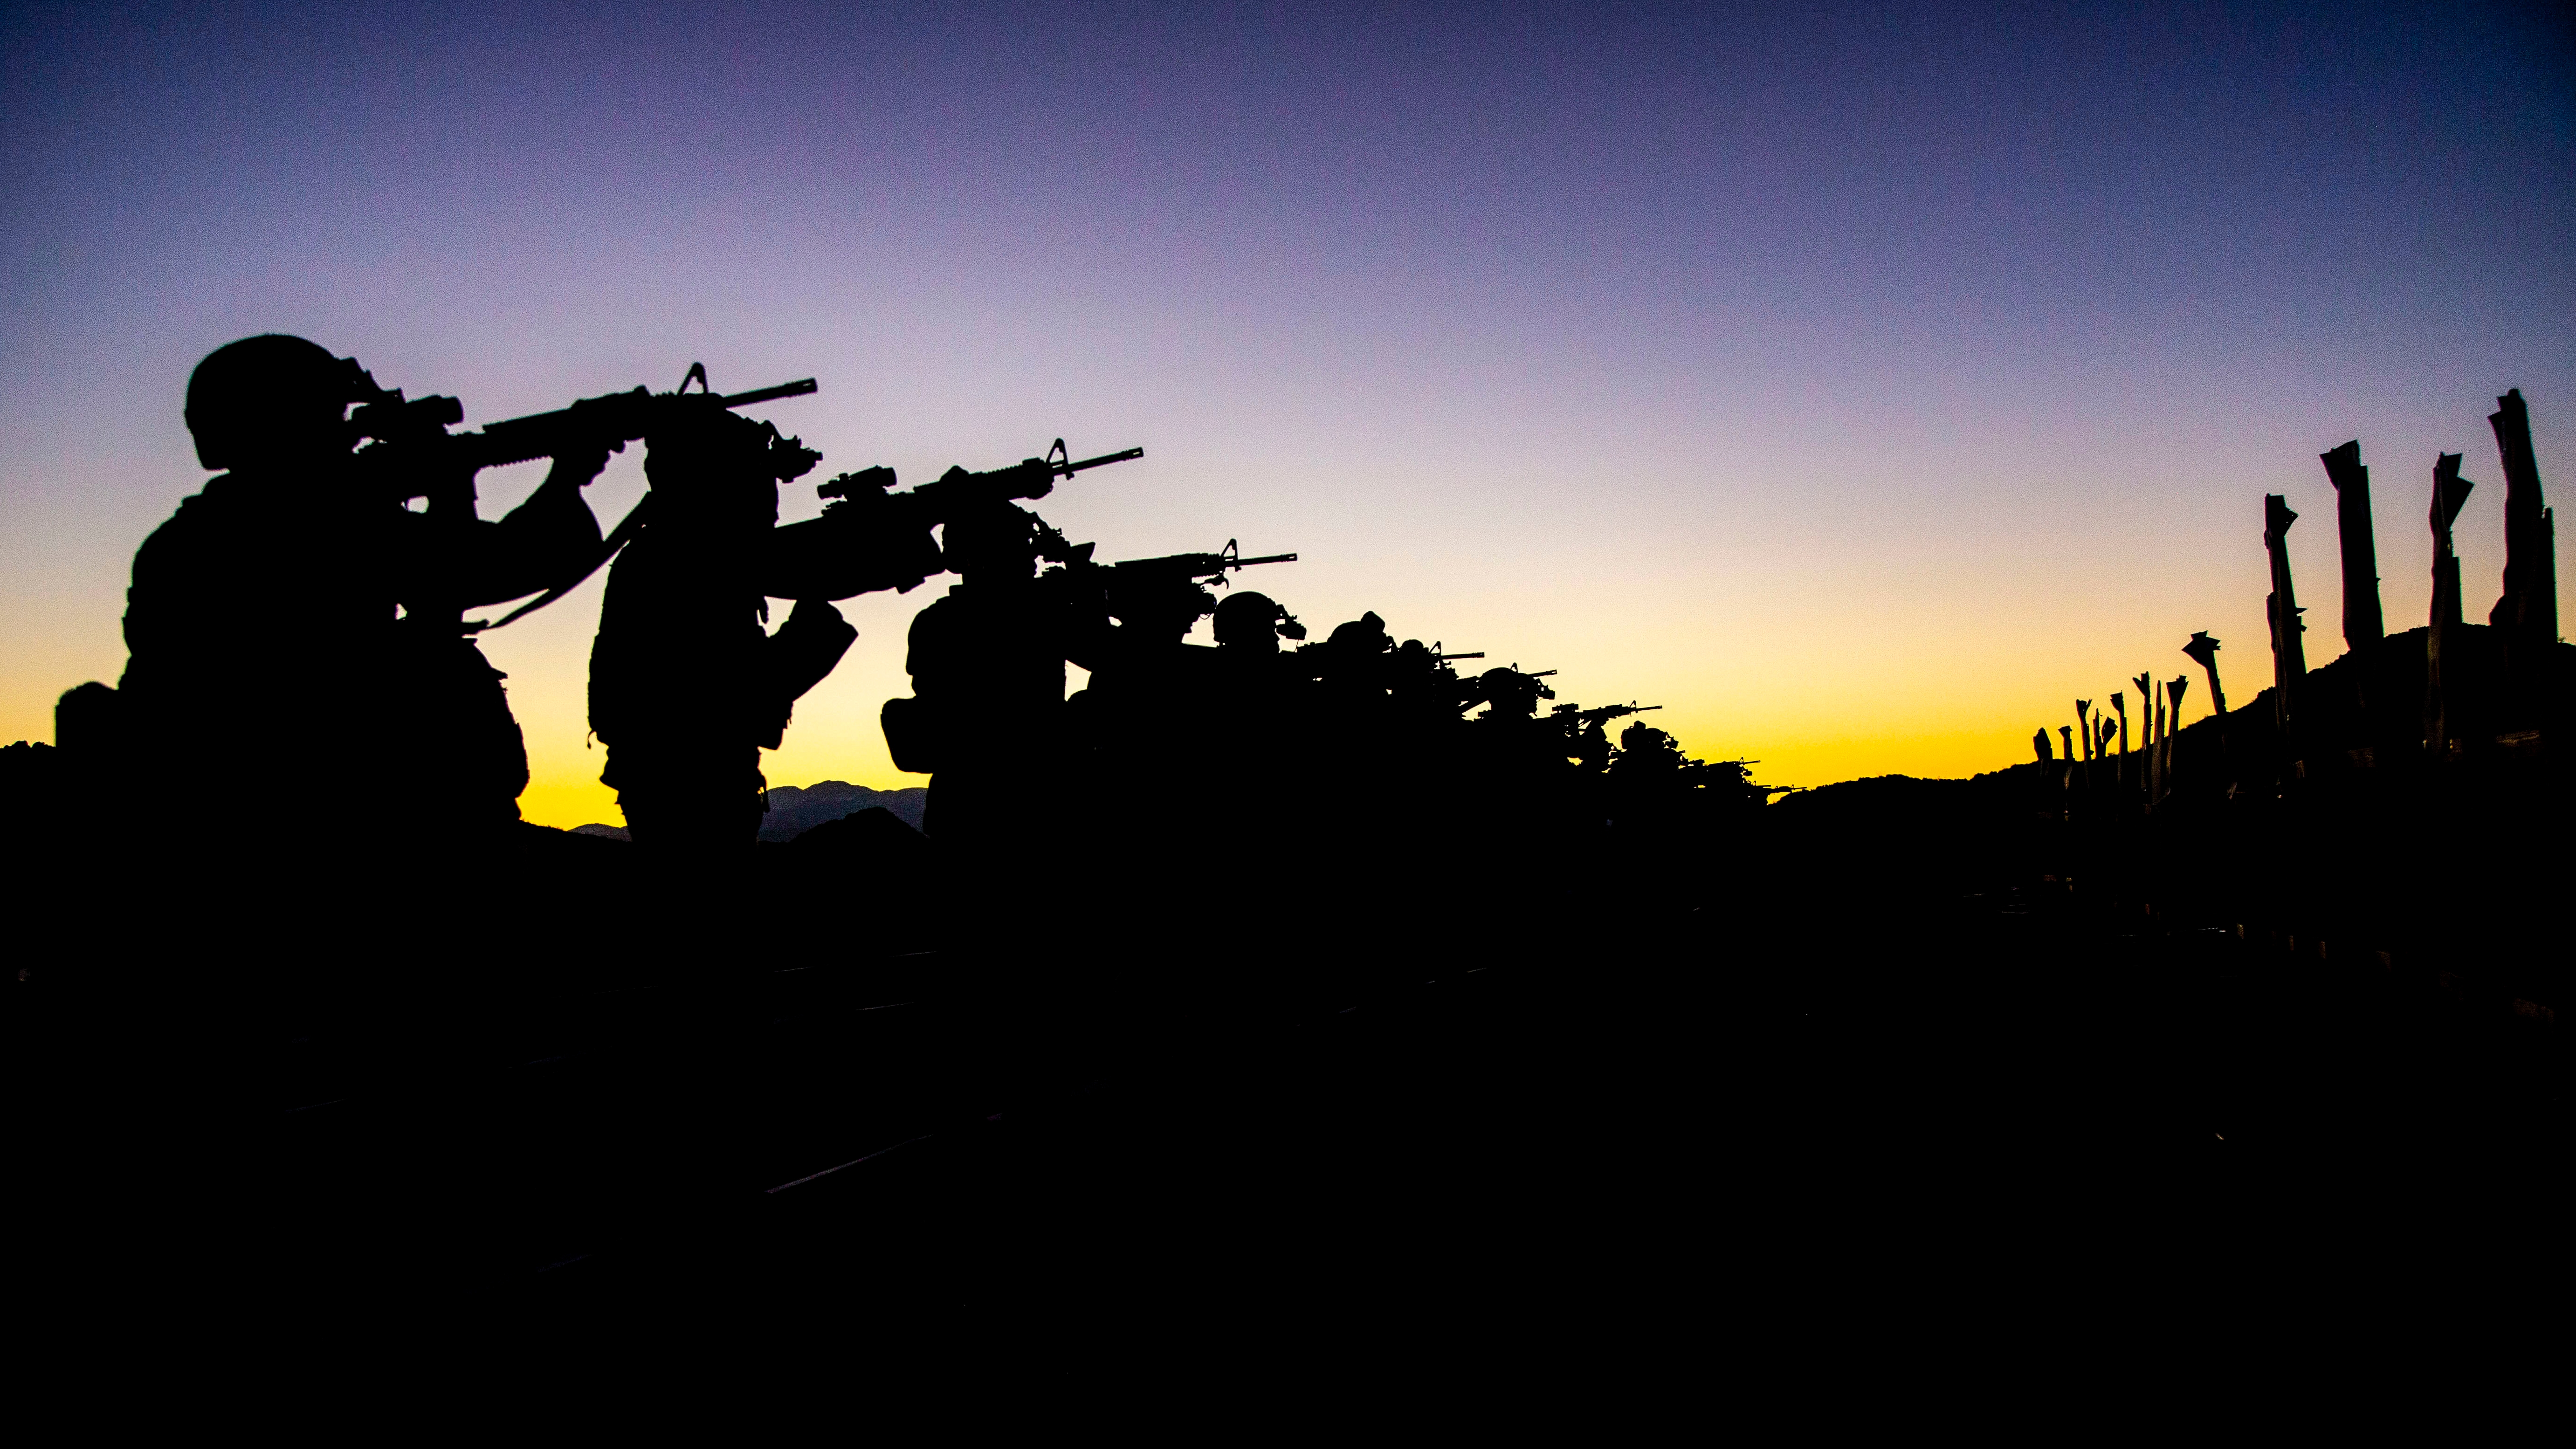 Marines with Combat Logistics Battalion 4, 3rd Marine Logistics Group, qualify for Combat Marksmanship Program tables 3-6 during Integrated Training Exercise 1-19 on Camp Wilson, Marine Corps Air Ground Combat Center Twentynine Palms, California, Oct. 17, 2018. CLB-4 Marines worked to qualify for the CMP tables in order to ensure combat readiness. (Cpl. Joshua Pinkney/Marine Corps)